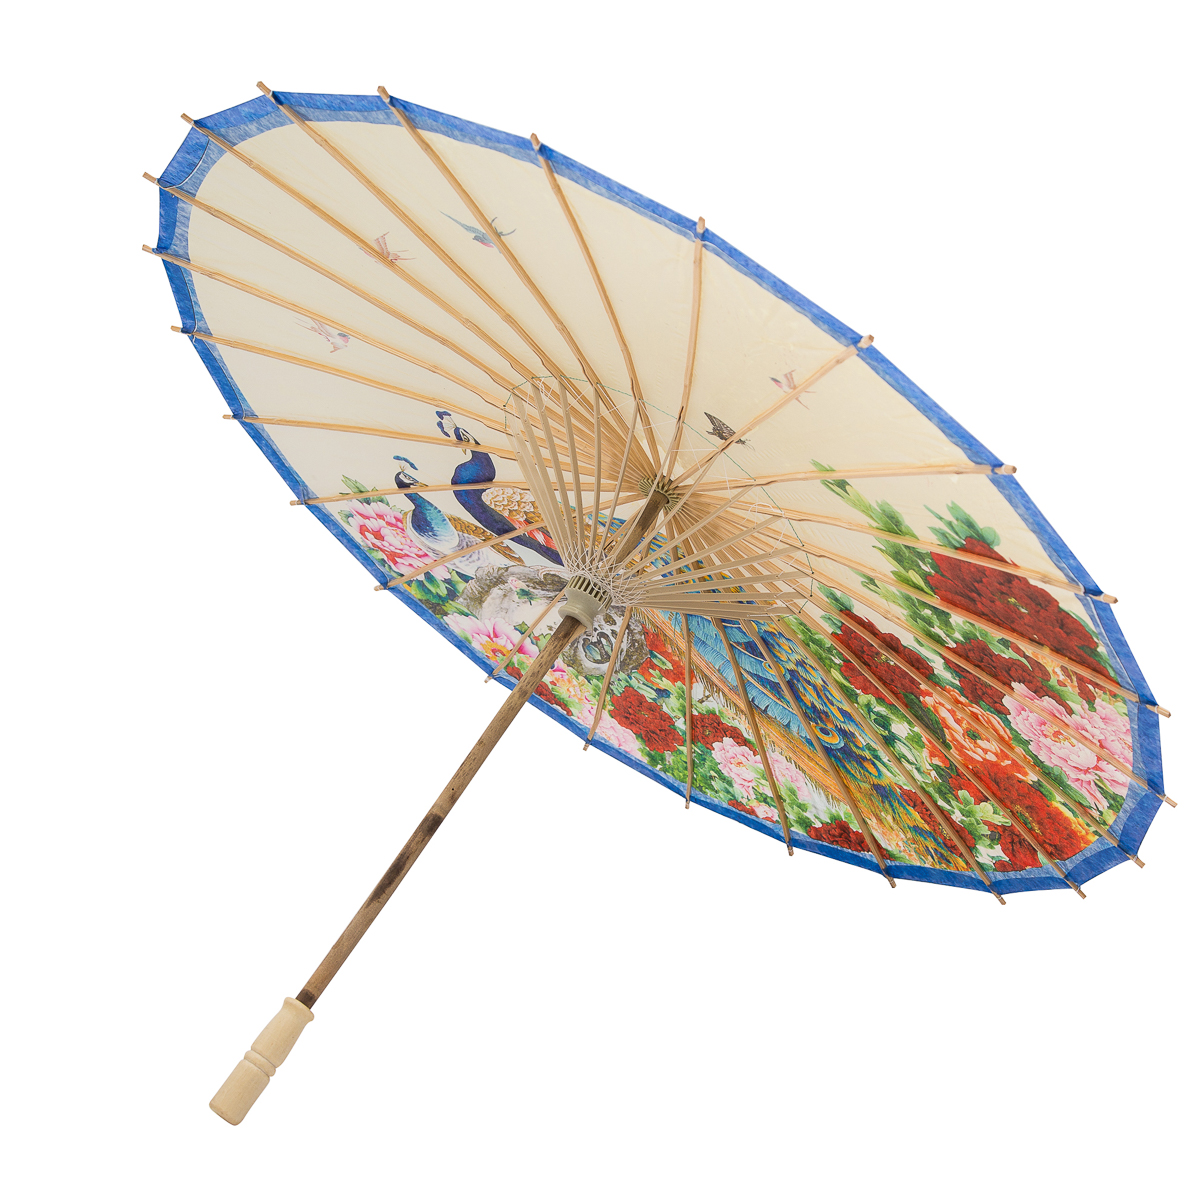 oil paper umbrella Silk umbrellas china is believed to be the home to umbrellas, which are still widely used in the country first made of silk and later popularly paper.